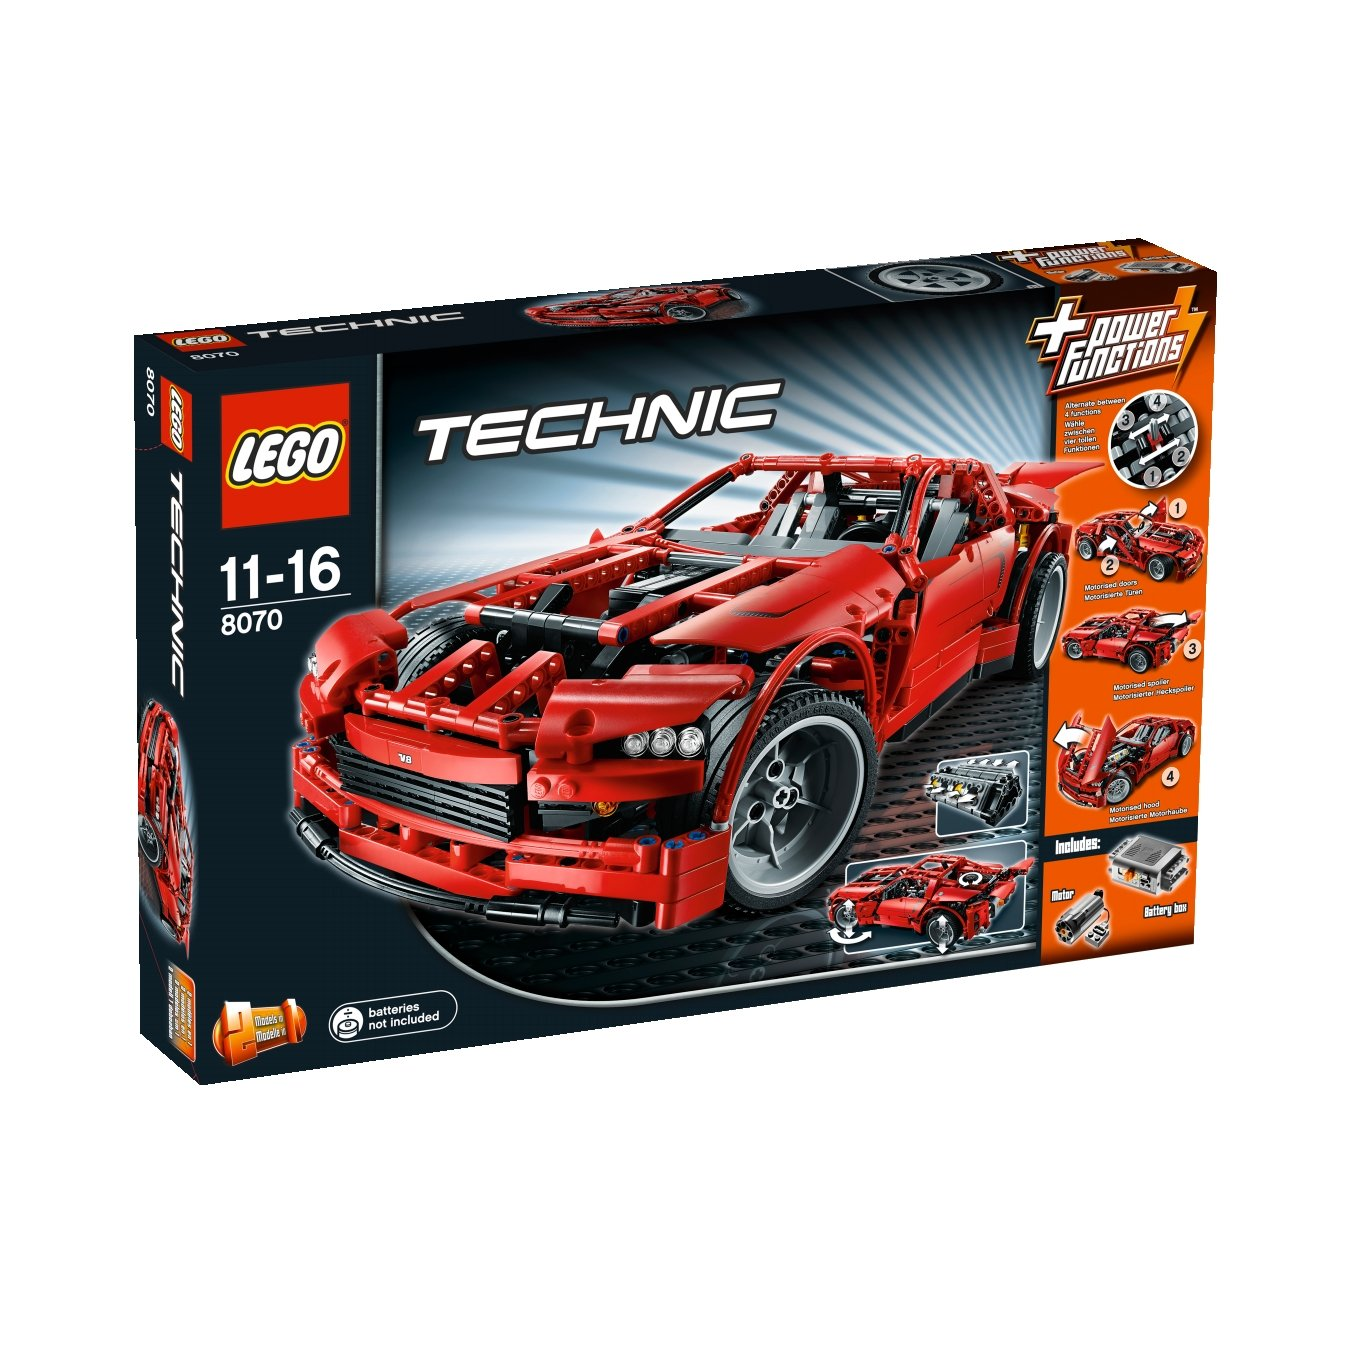 lego technic 8070 super car incontournable pour les fans d automobile. Black Bedroom Furniture Sets. Home Design Ideas